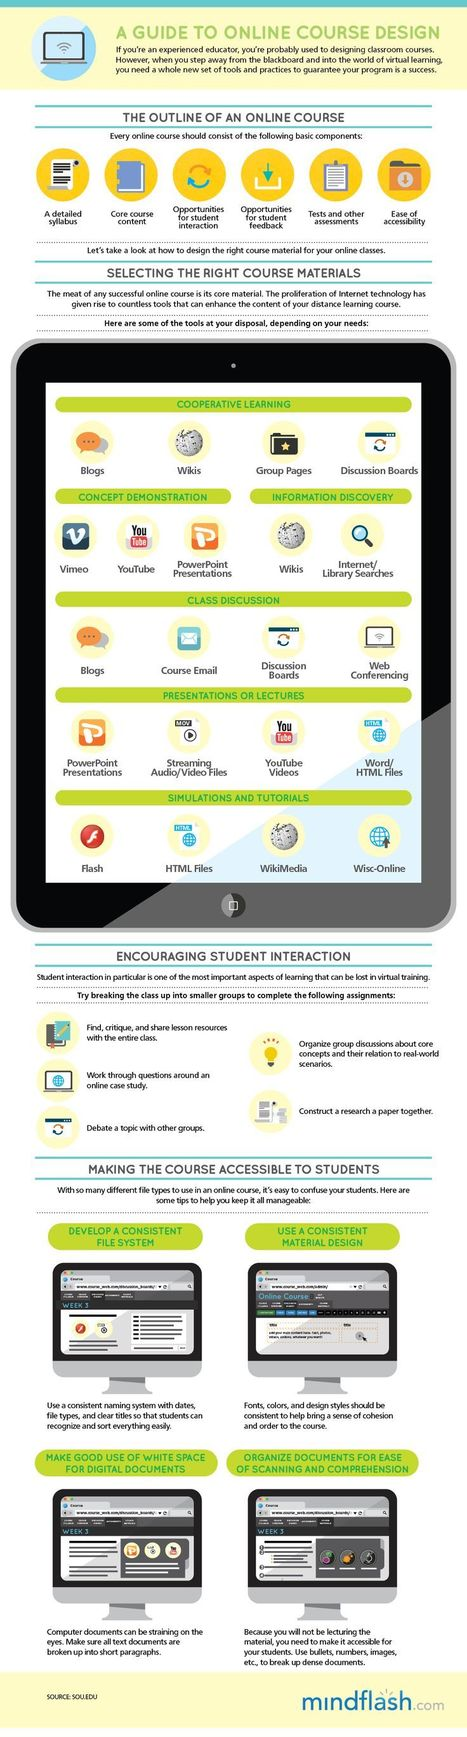 Guide to Online Course Design [INFOGRAPHIC] | Online Course Design | Scoop.it